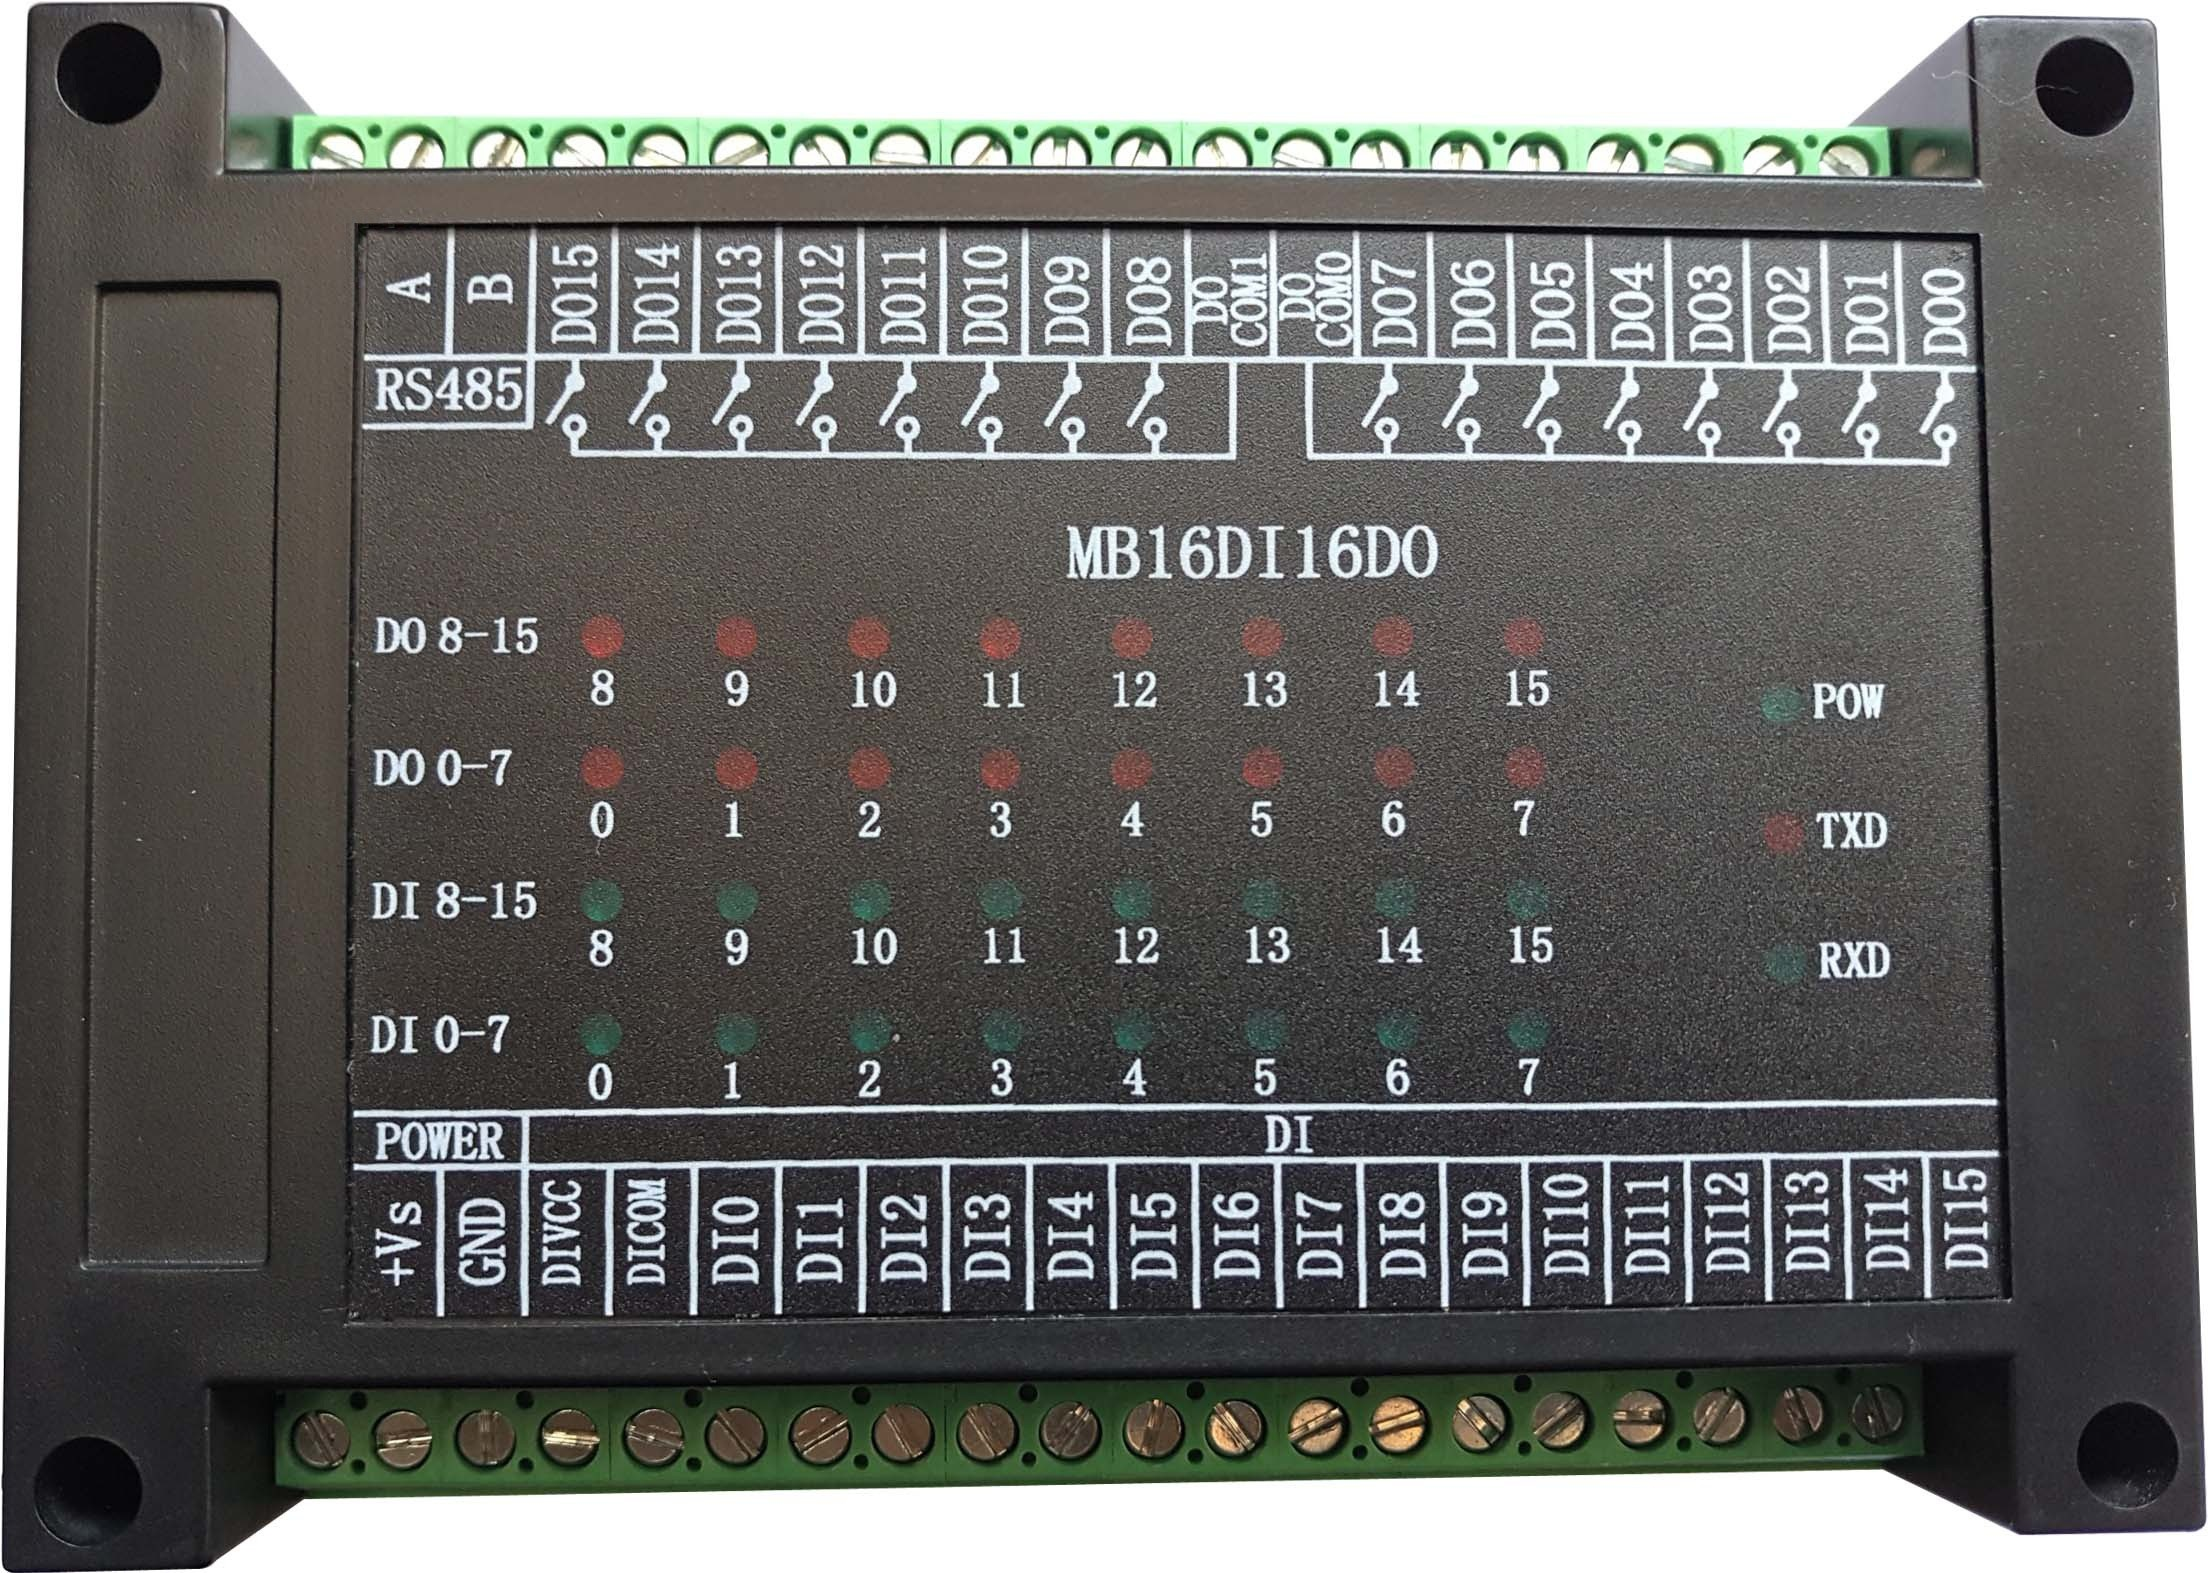 Switch Input and Output 16 Way Open 16 Way Relay Output Module RS485 MODBUS-RTU Communication